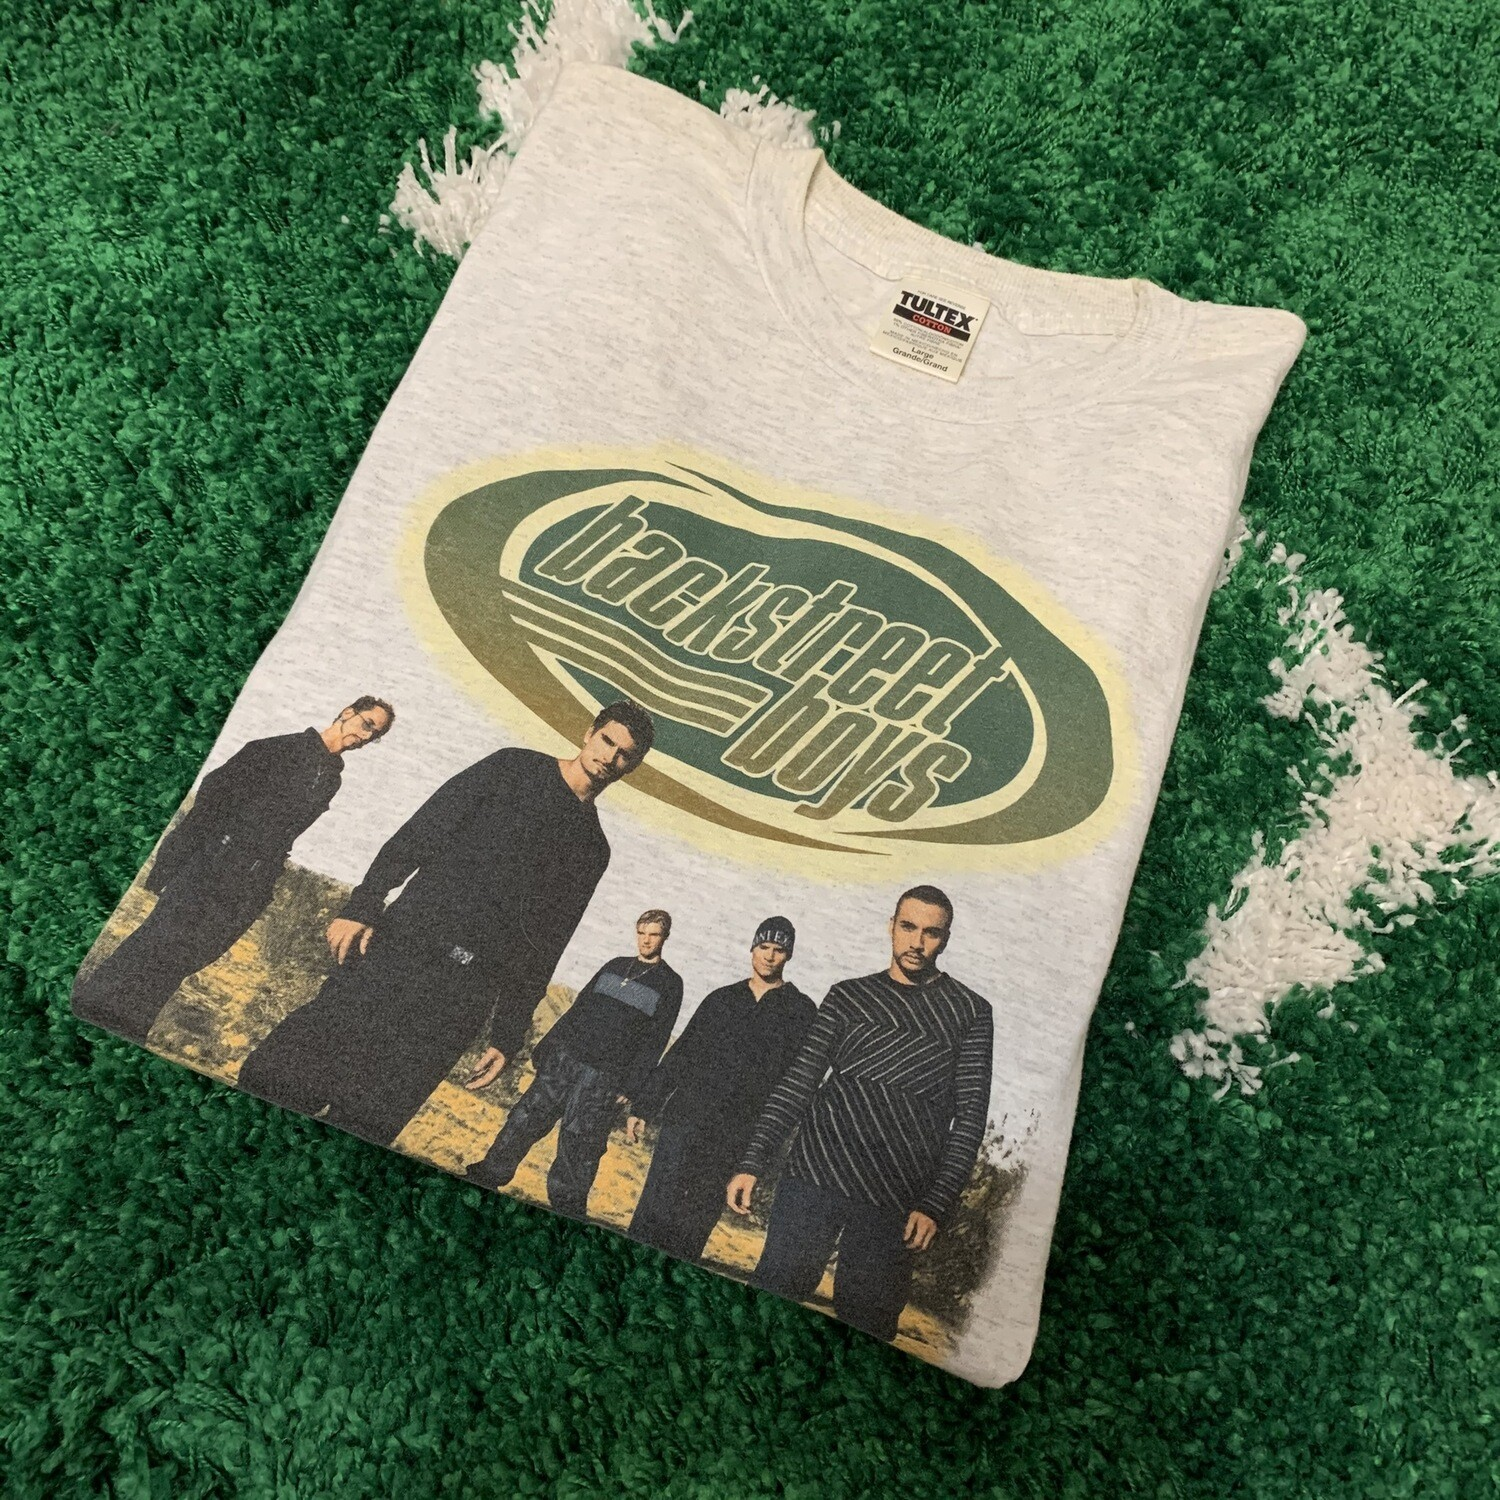 Backstreet Boys T-Shirt 20 Size Large